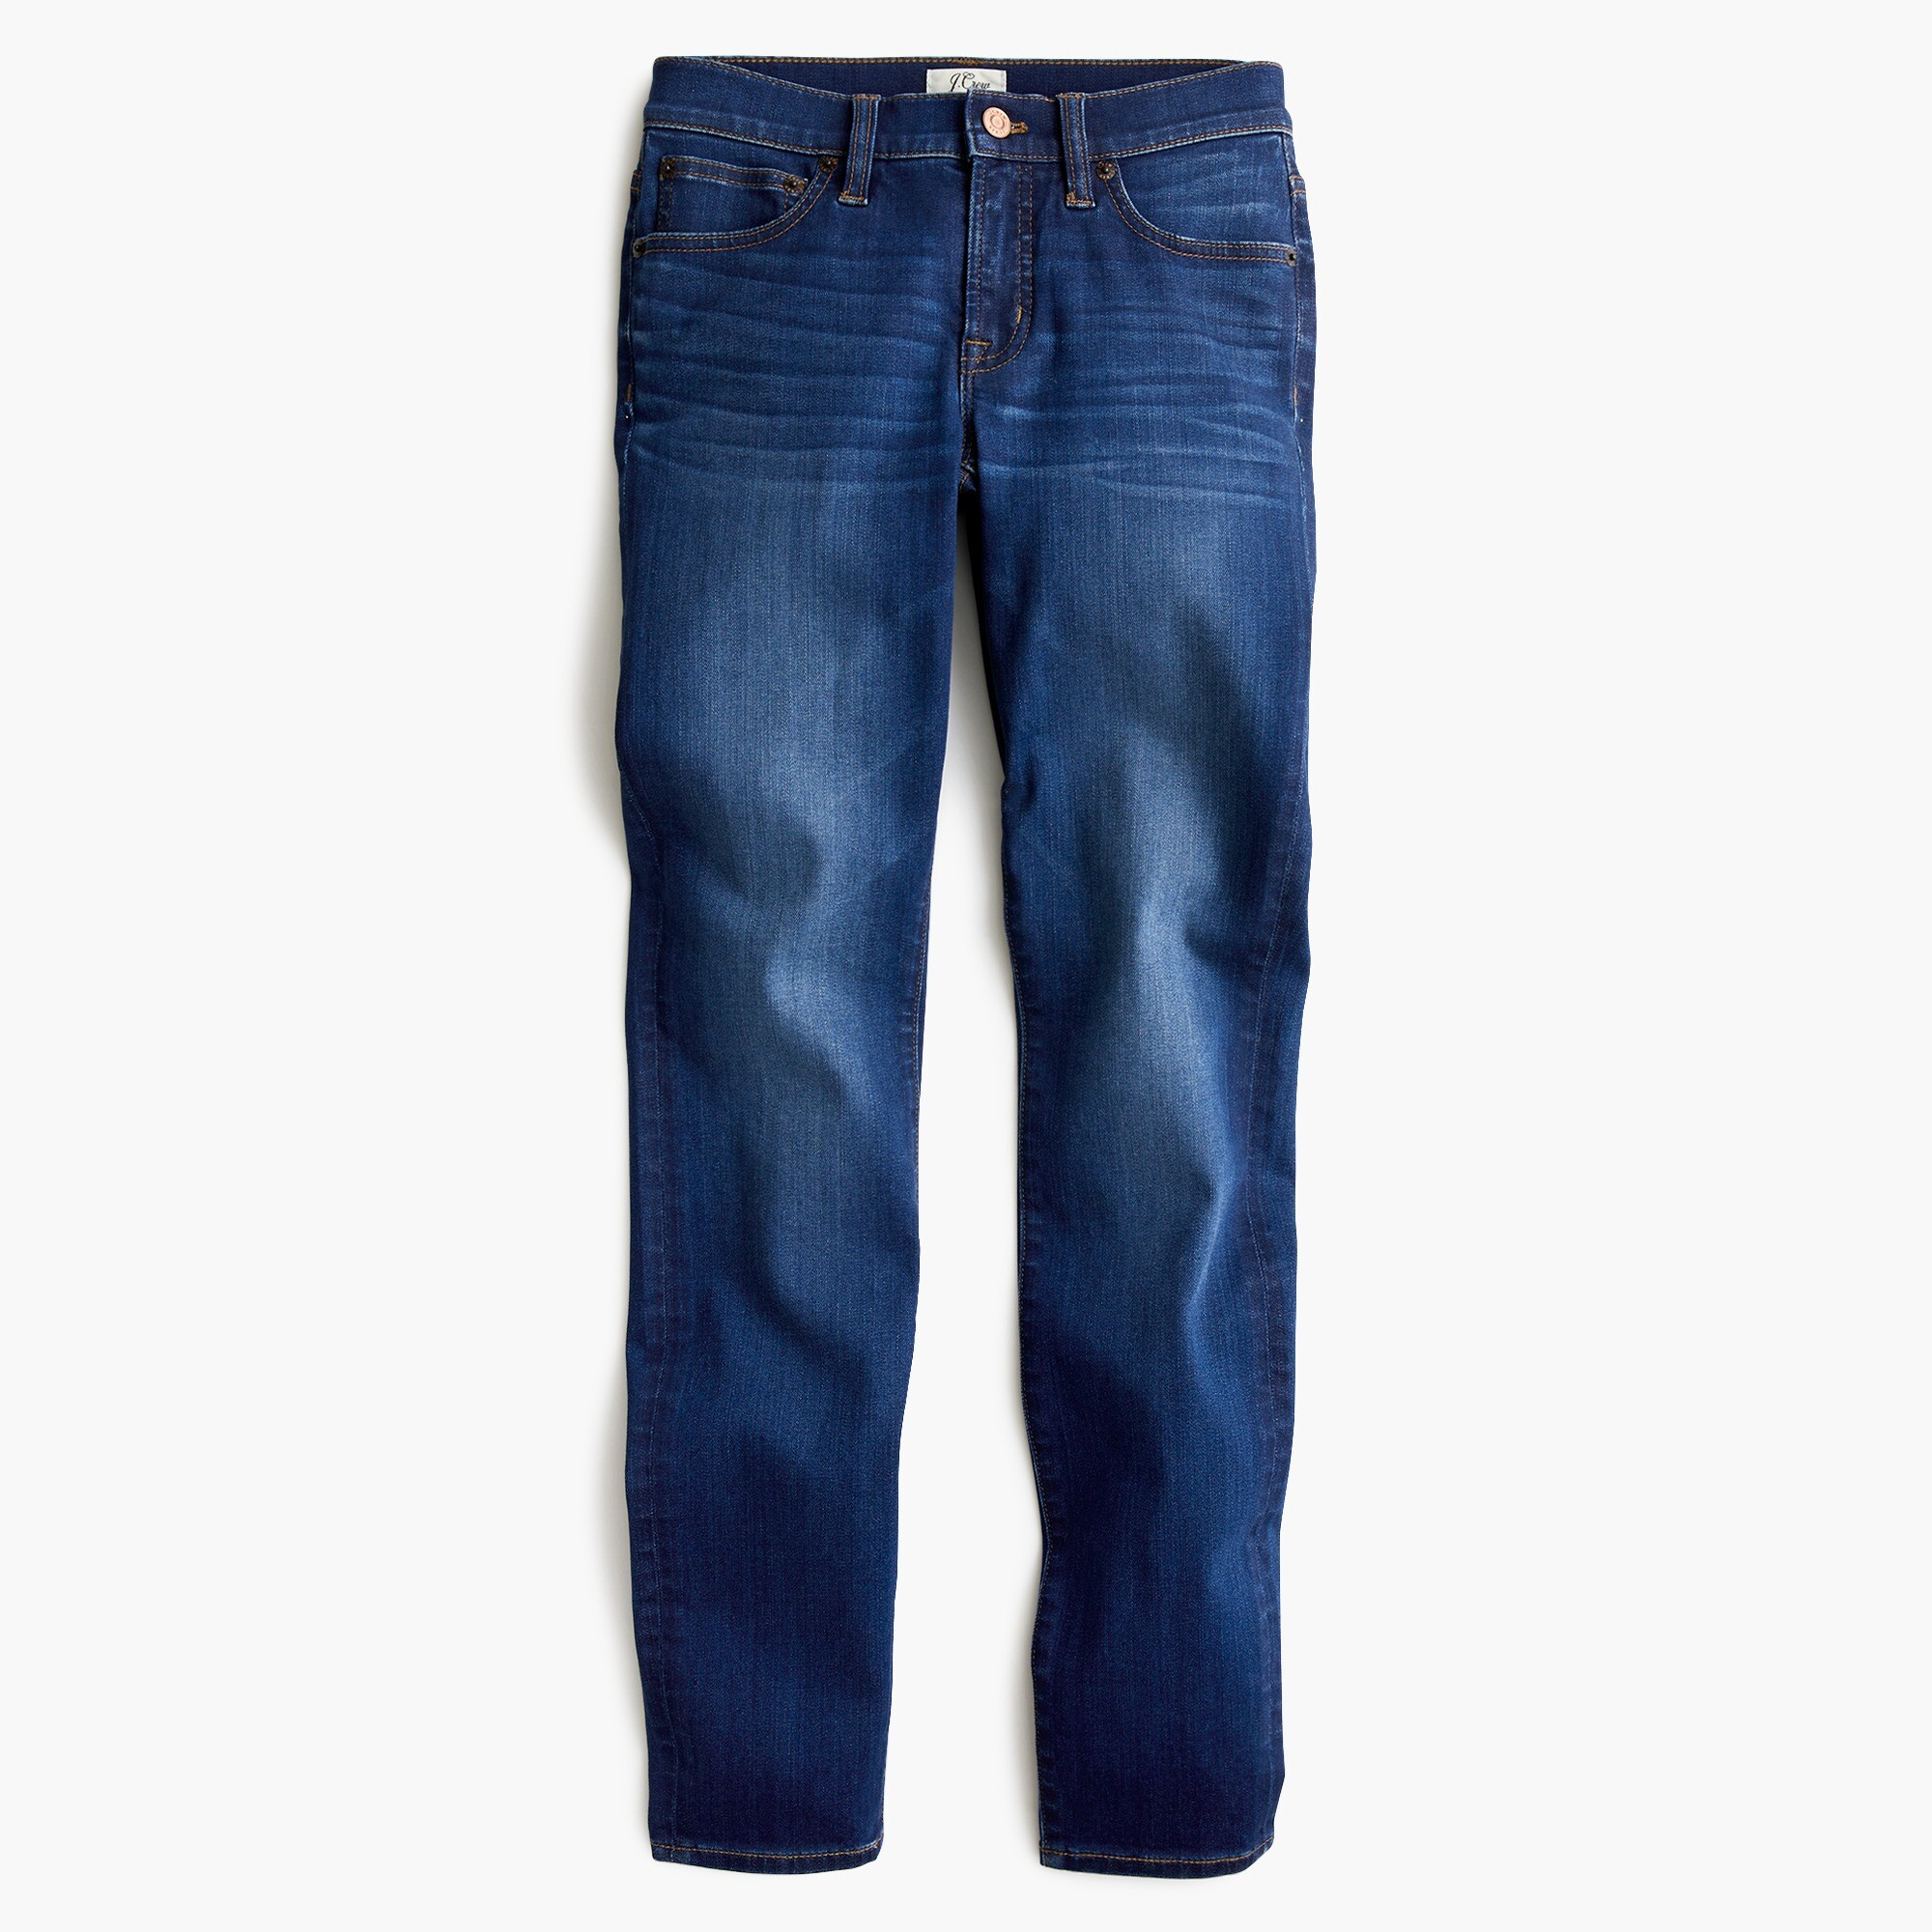 "Petite8"" toothpick jean in medium wash"